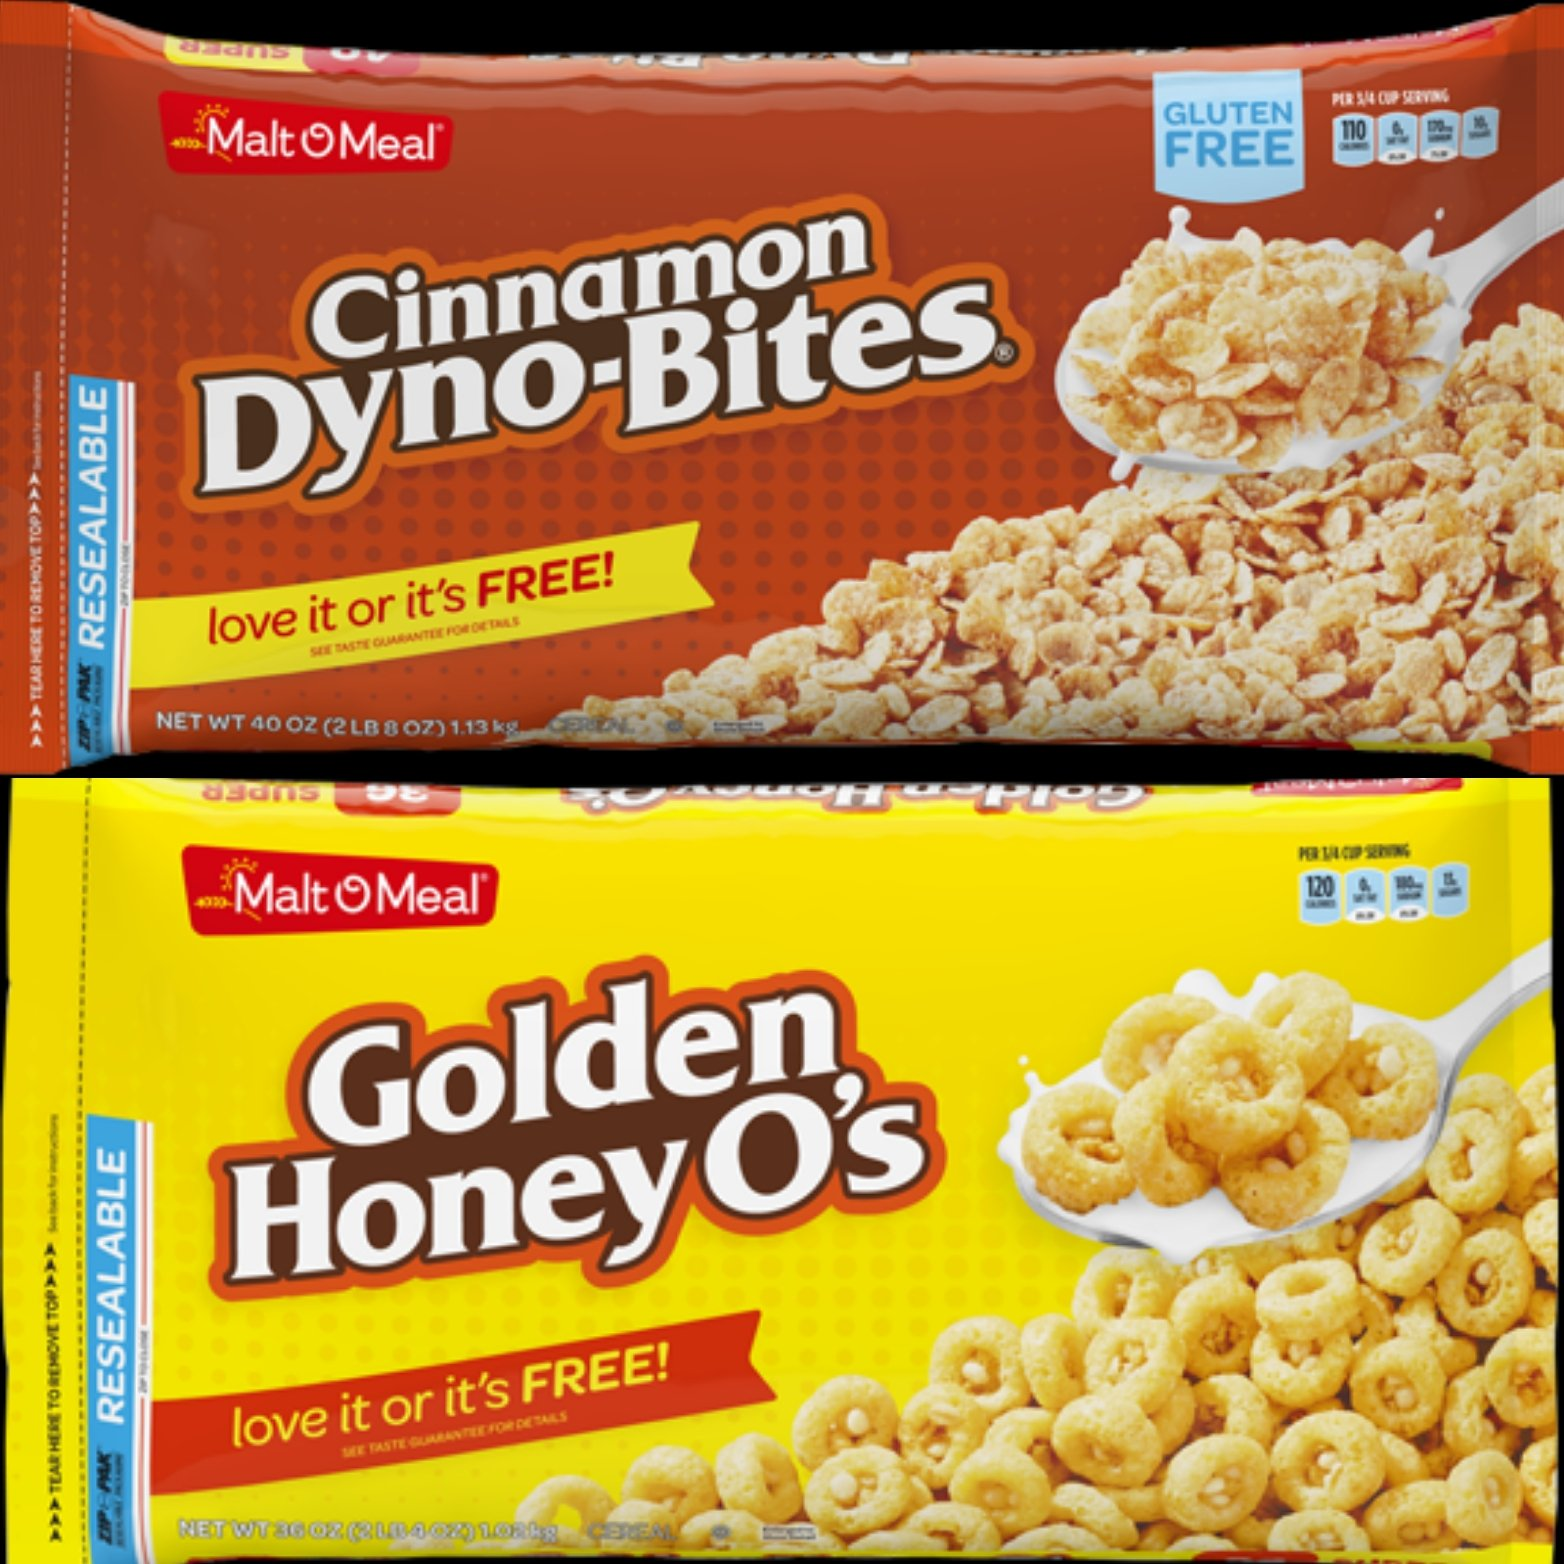 Malt-O-Meal Cinnamon Dyno-Bites and Golden Honey O's Cereal